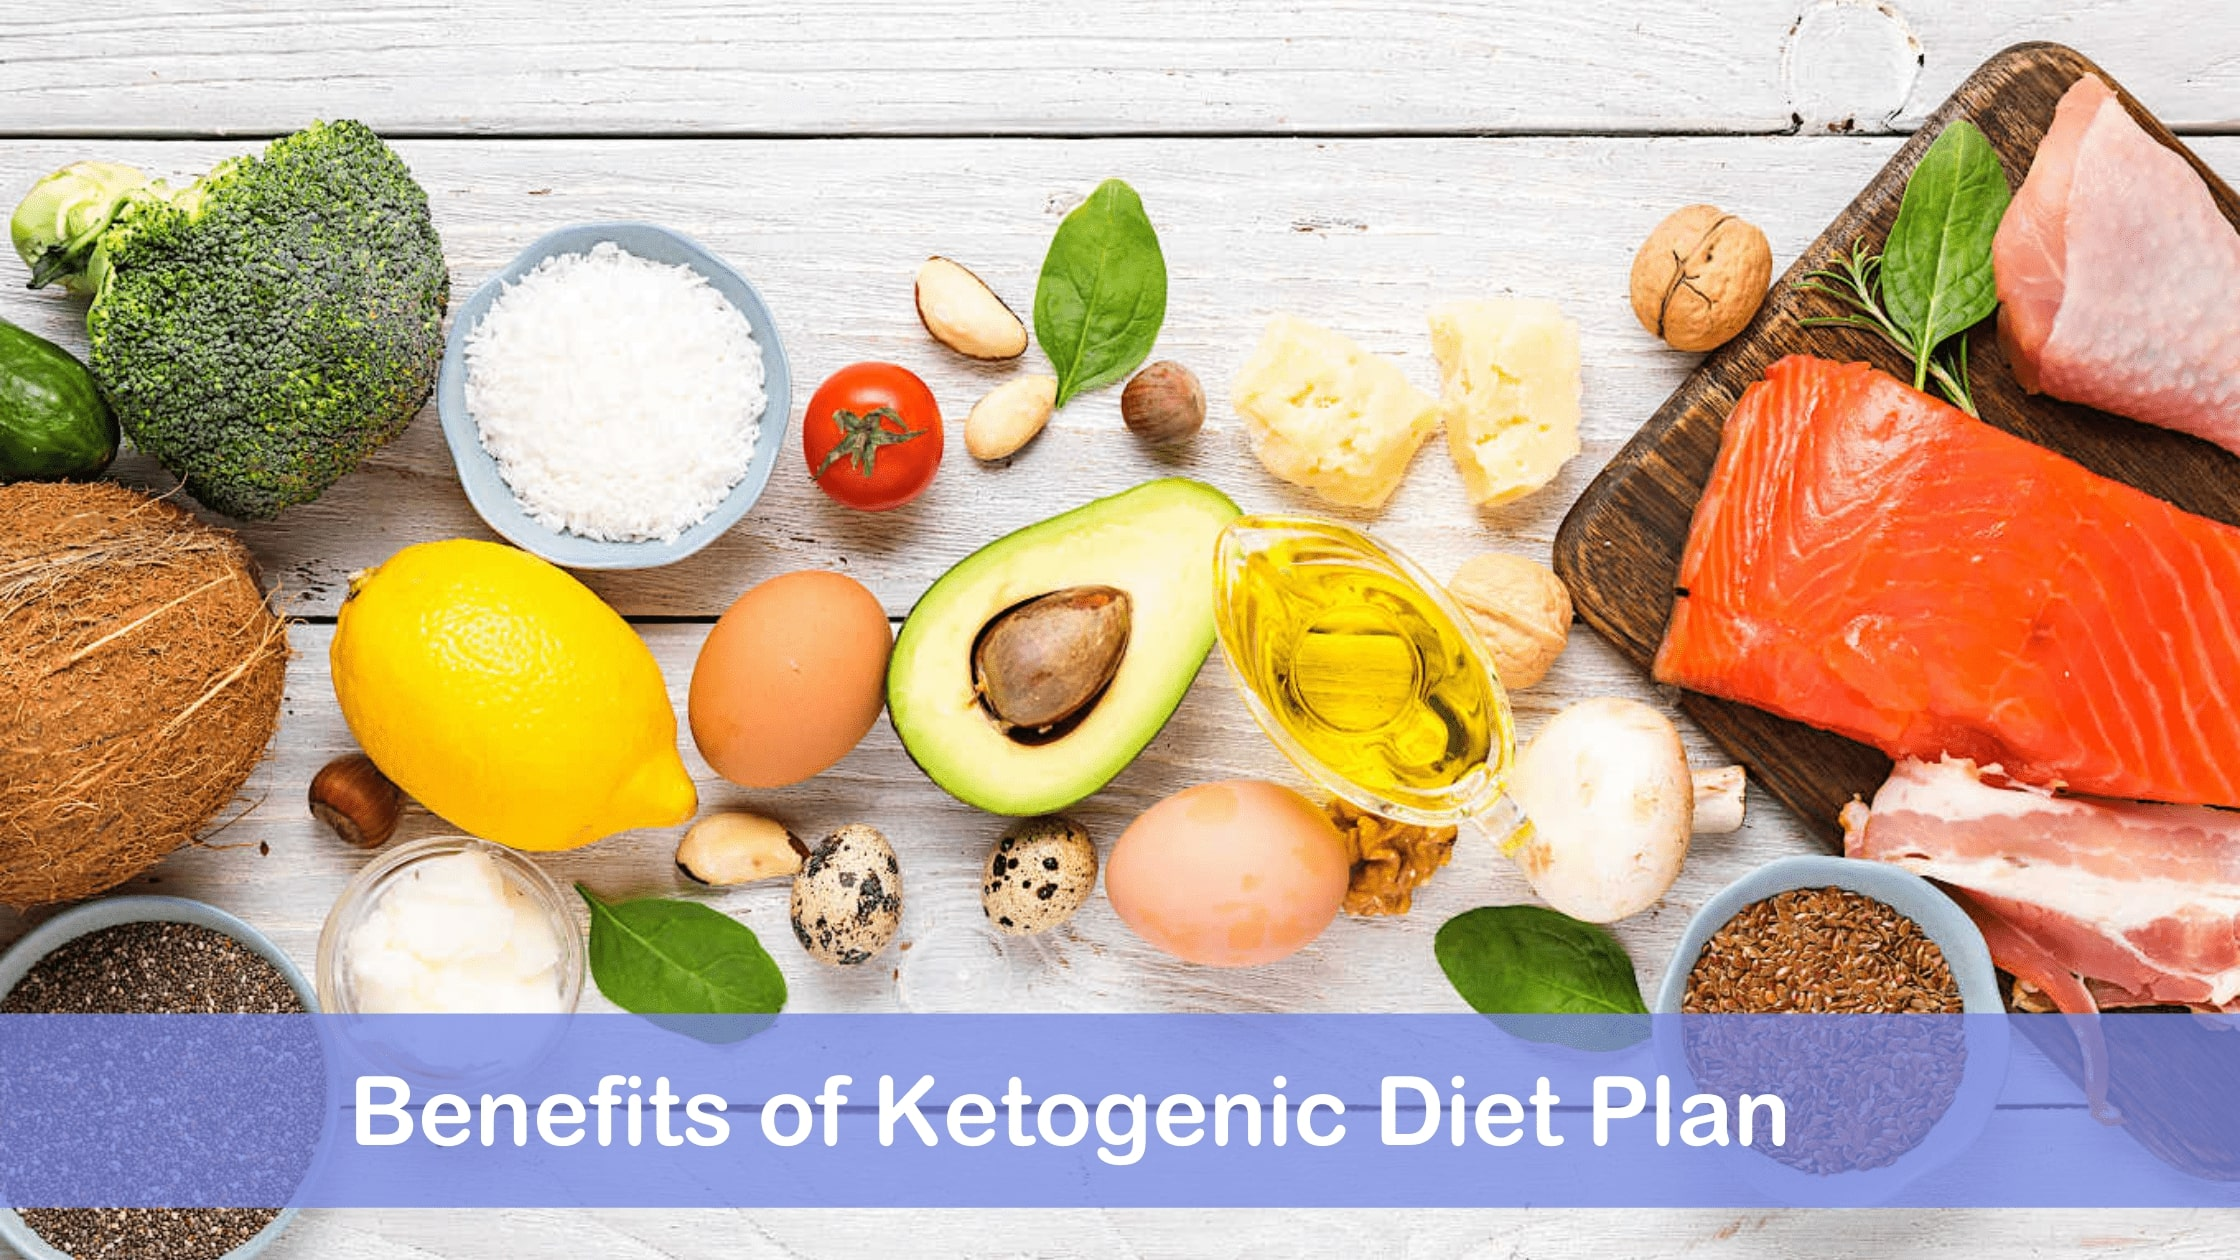 Benefits of Ketogenic diet plan